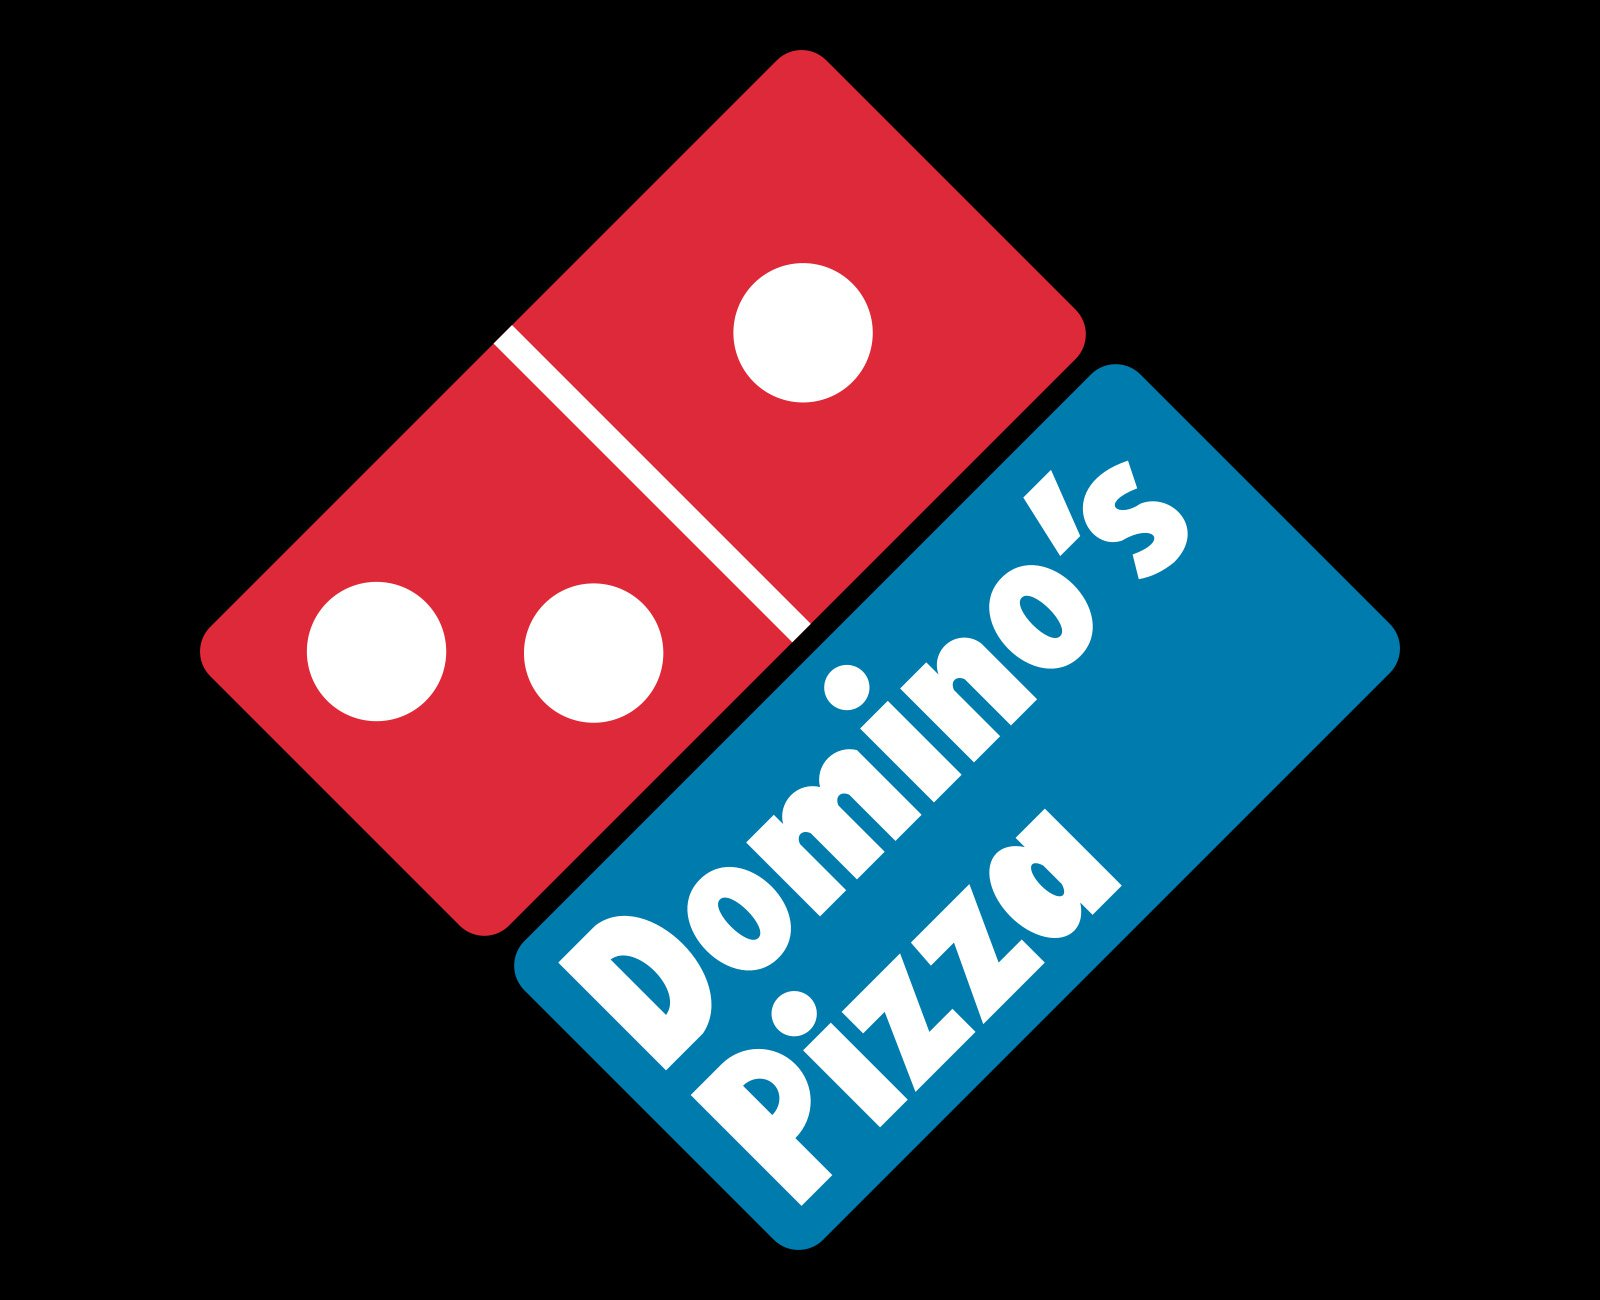 Meaning Of Change >> Domino's Logo, Domino's Symbol, Meaning, History and Evolution